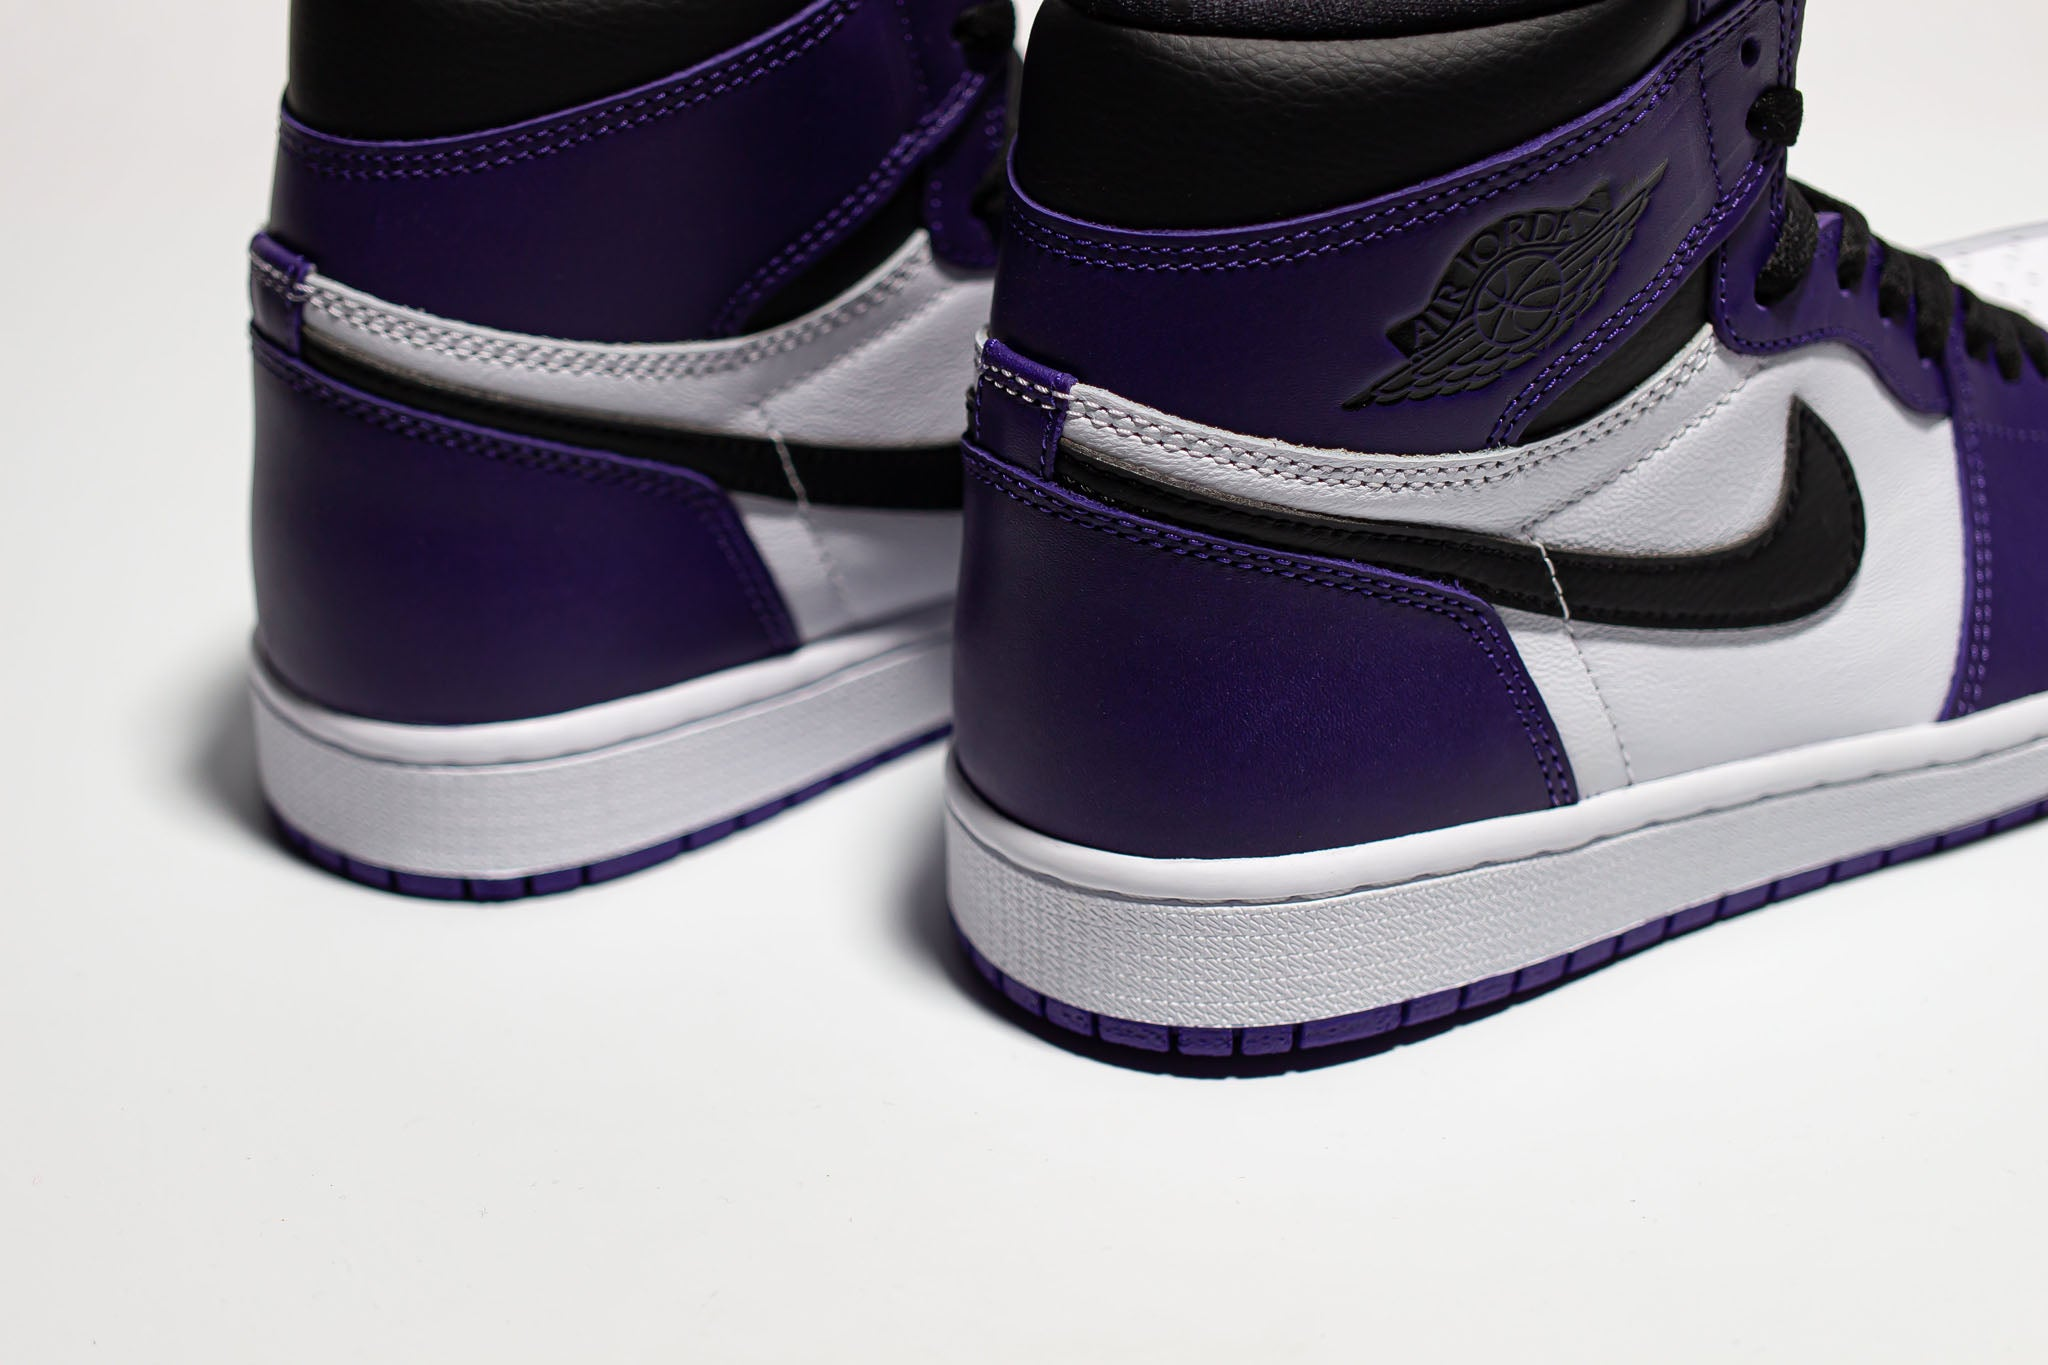 jordan-1-court-purple-2